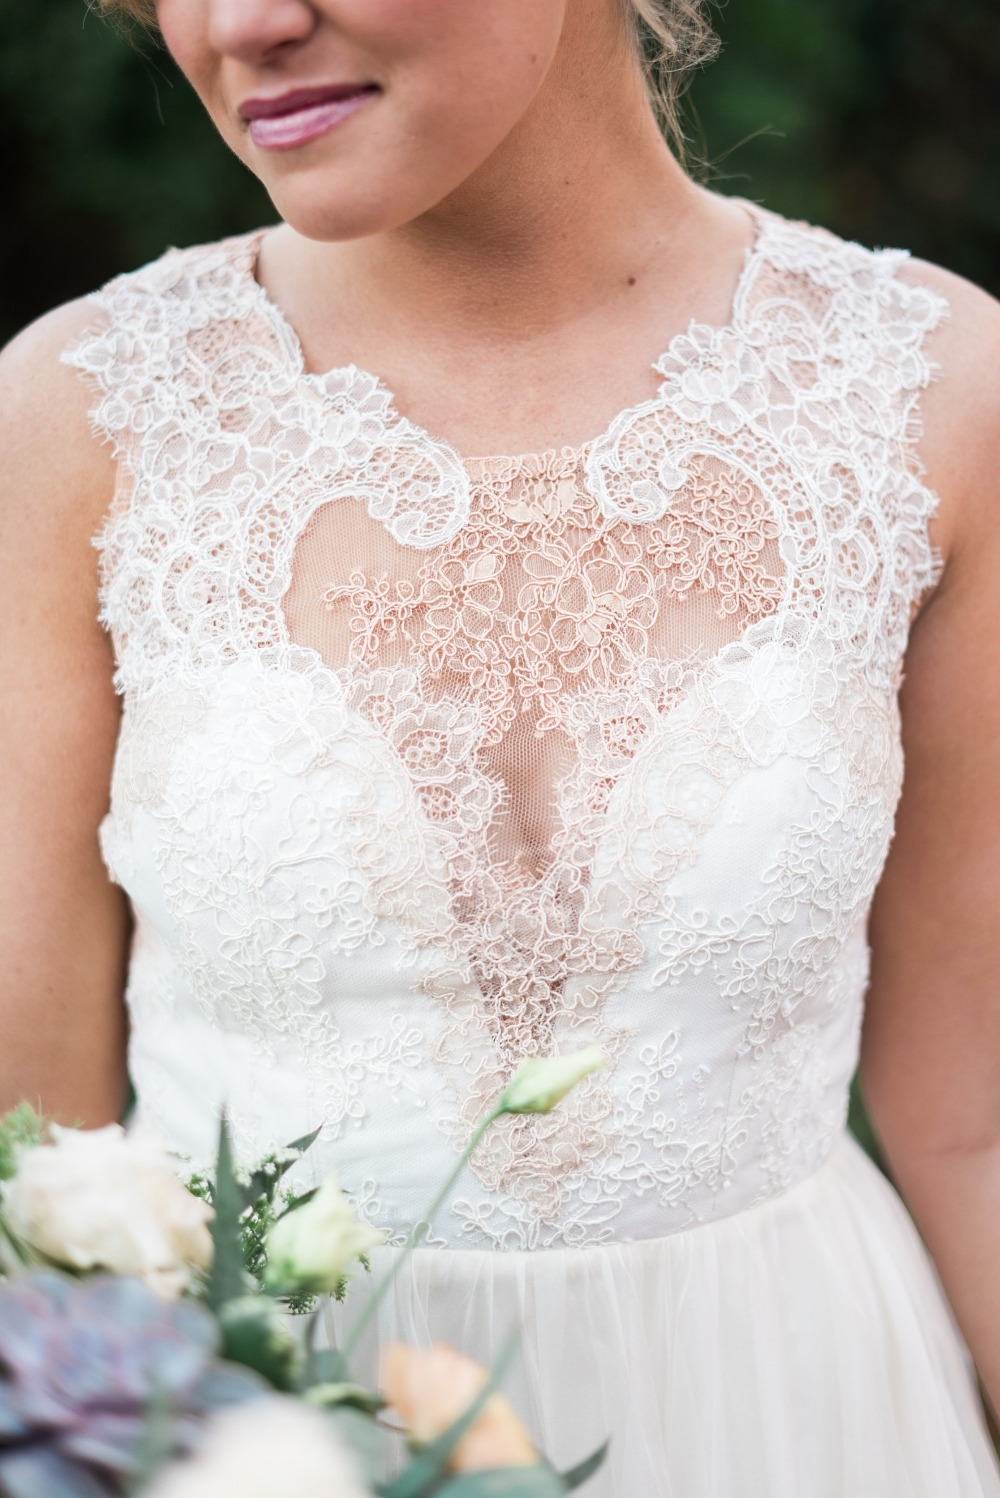 lace detailing on vintage style wedding dress